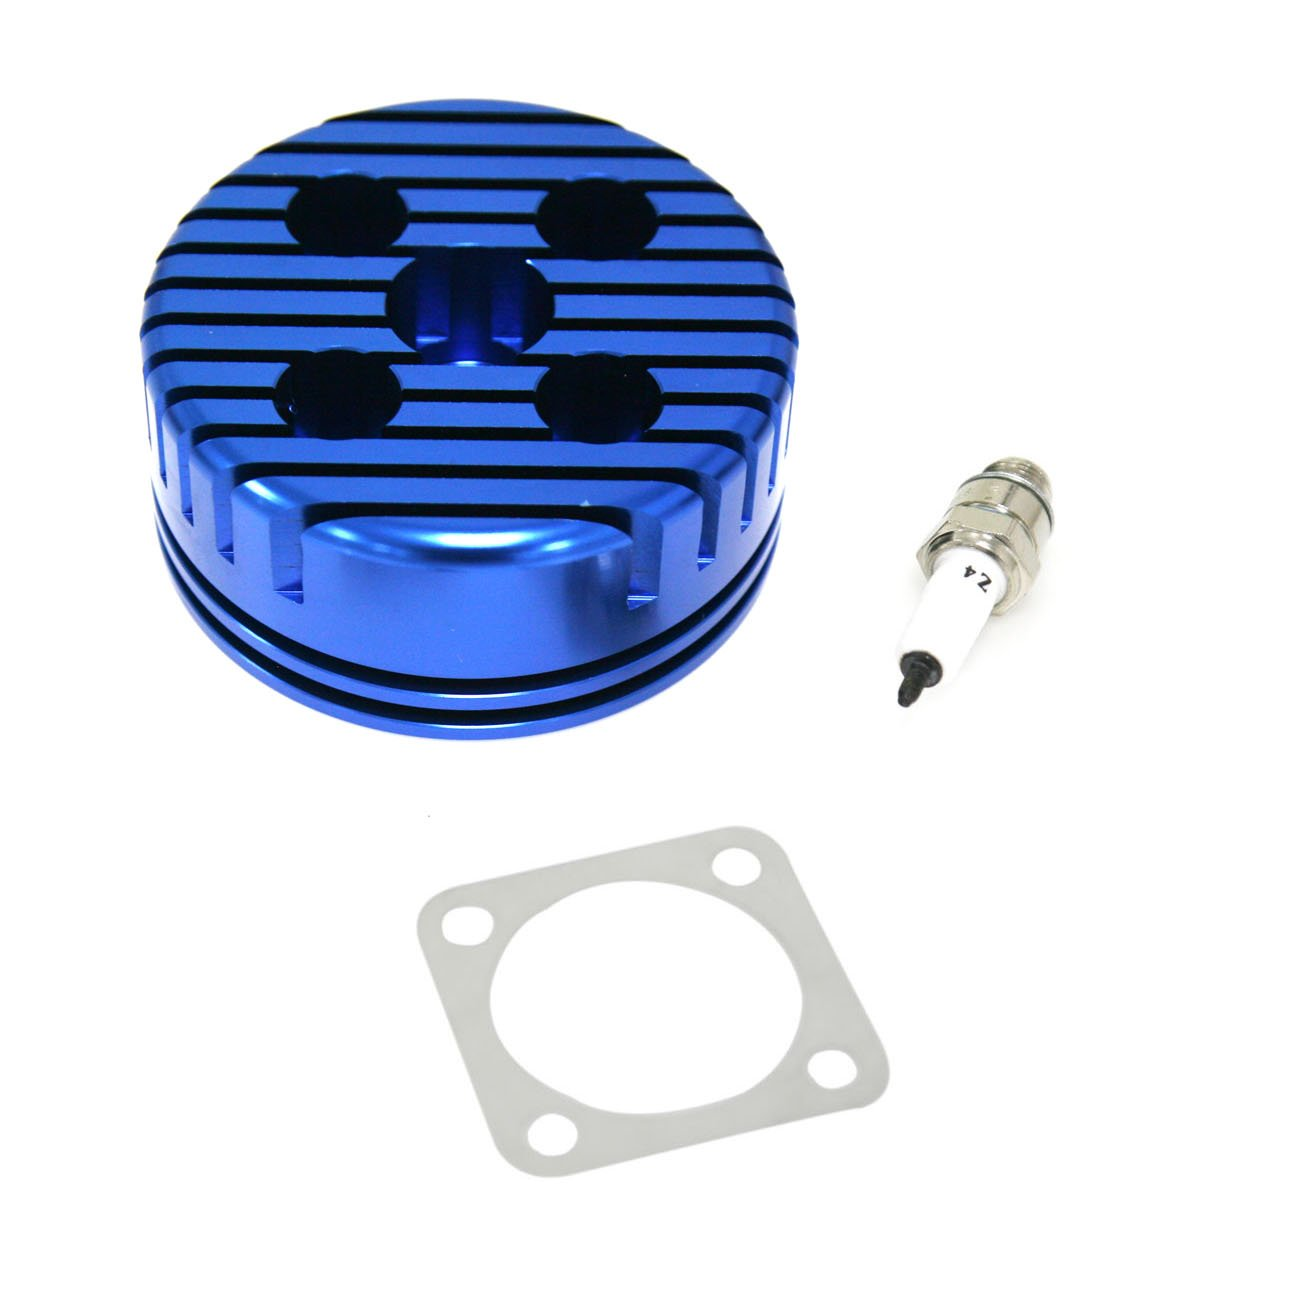 New CNC Red Cylinder Head And Spark Plug Set For Racing 66//80cc 2 Stroke Engine